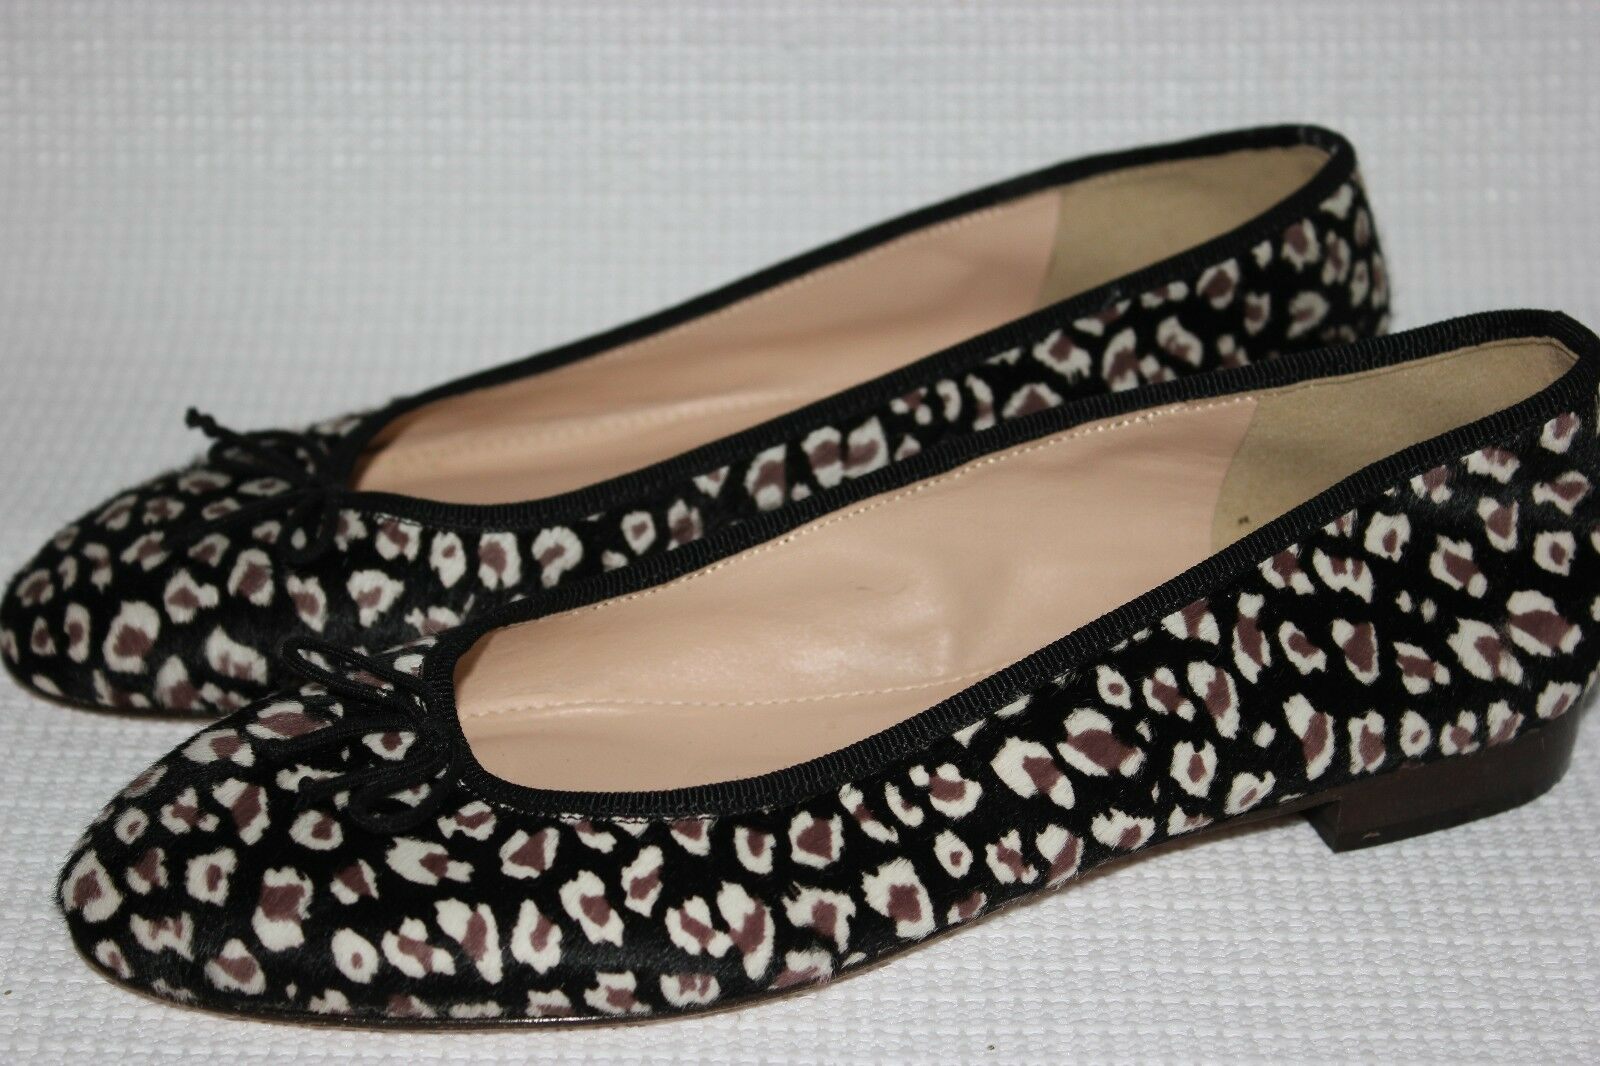 J.CREW COLLECTION KIKI LEOPARD CALF HAIR BALLET FLATS SIZE 7 GREY BROWN F5512